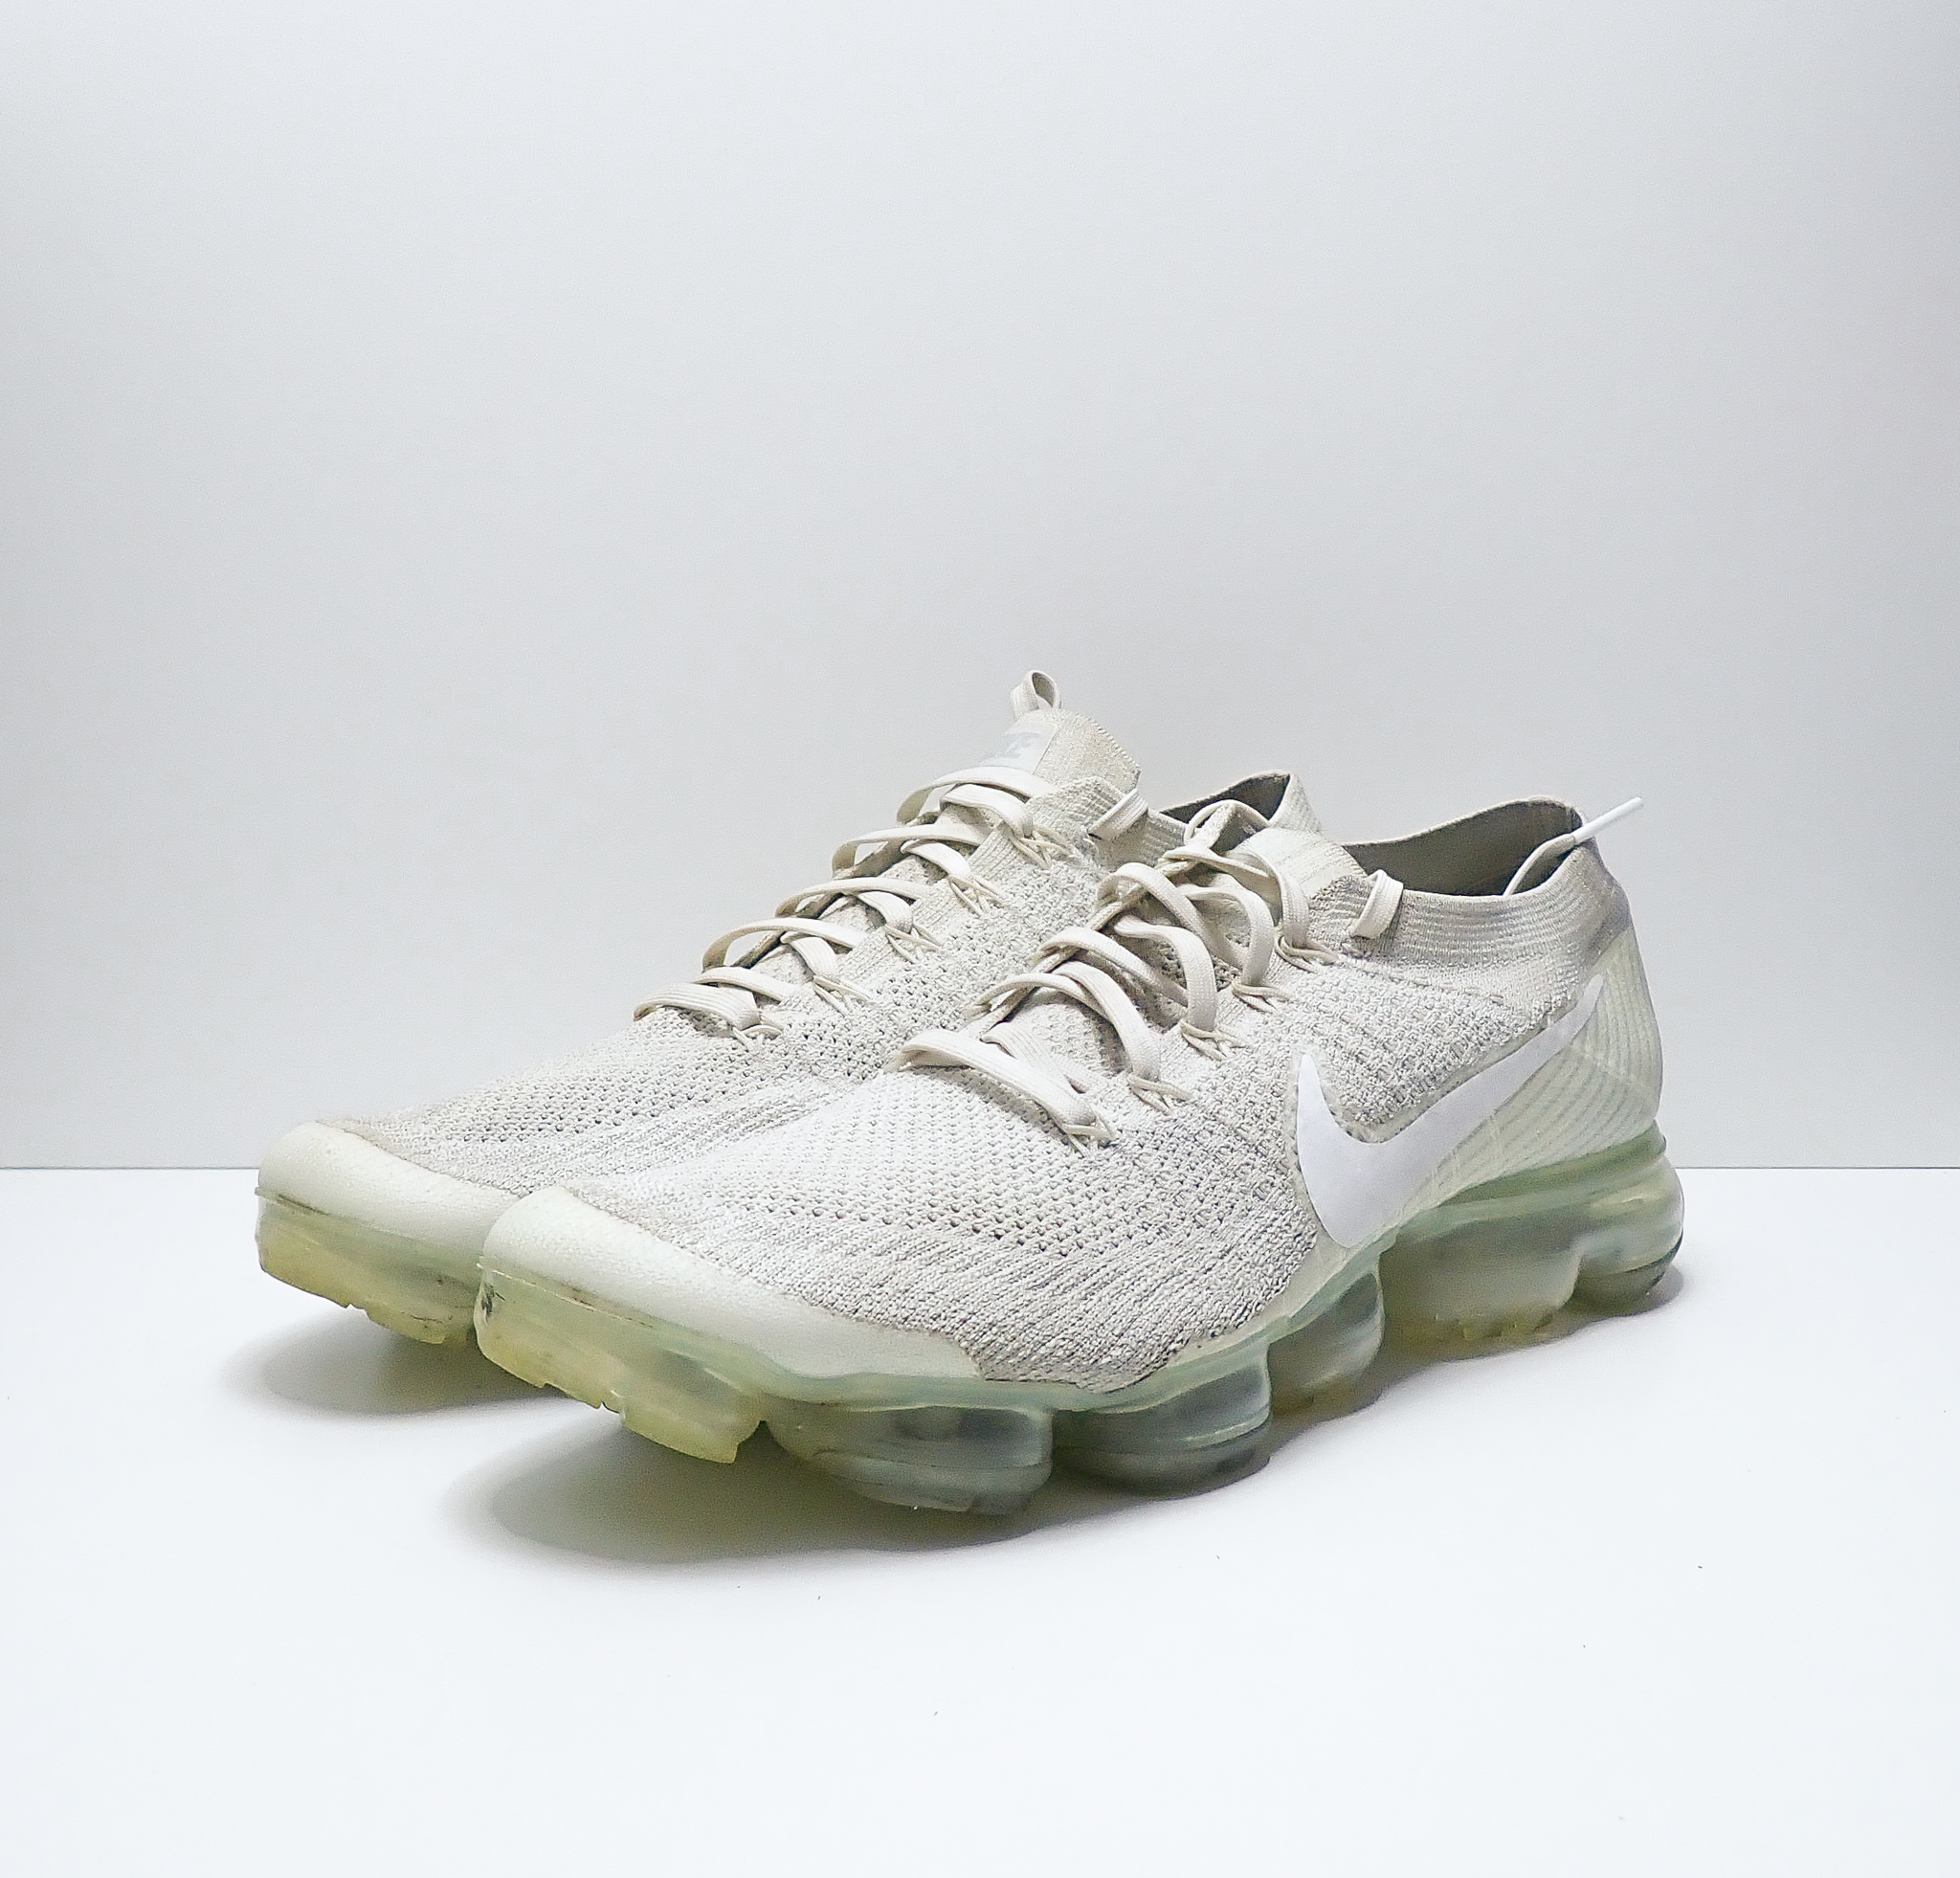 Nike Air Vapor Max Triple White